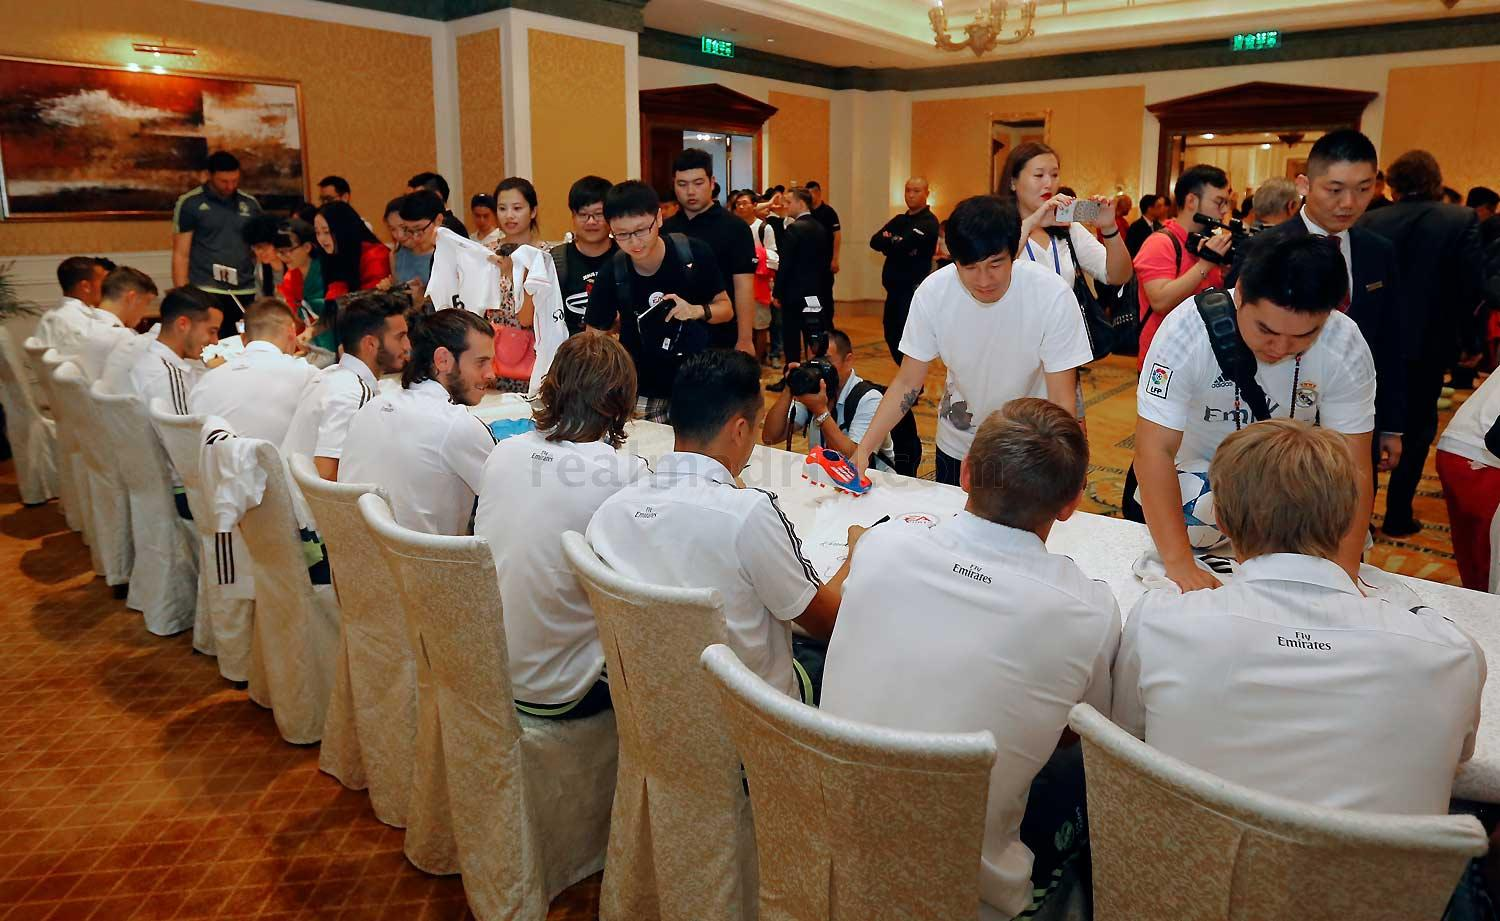 Real Madrid - Meet & Greet en Guangzhou - 26-07-2015